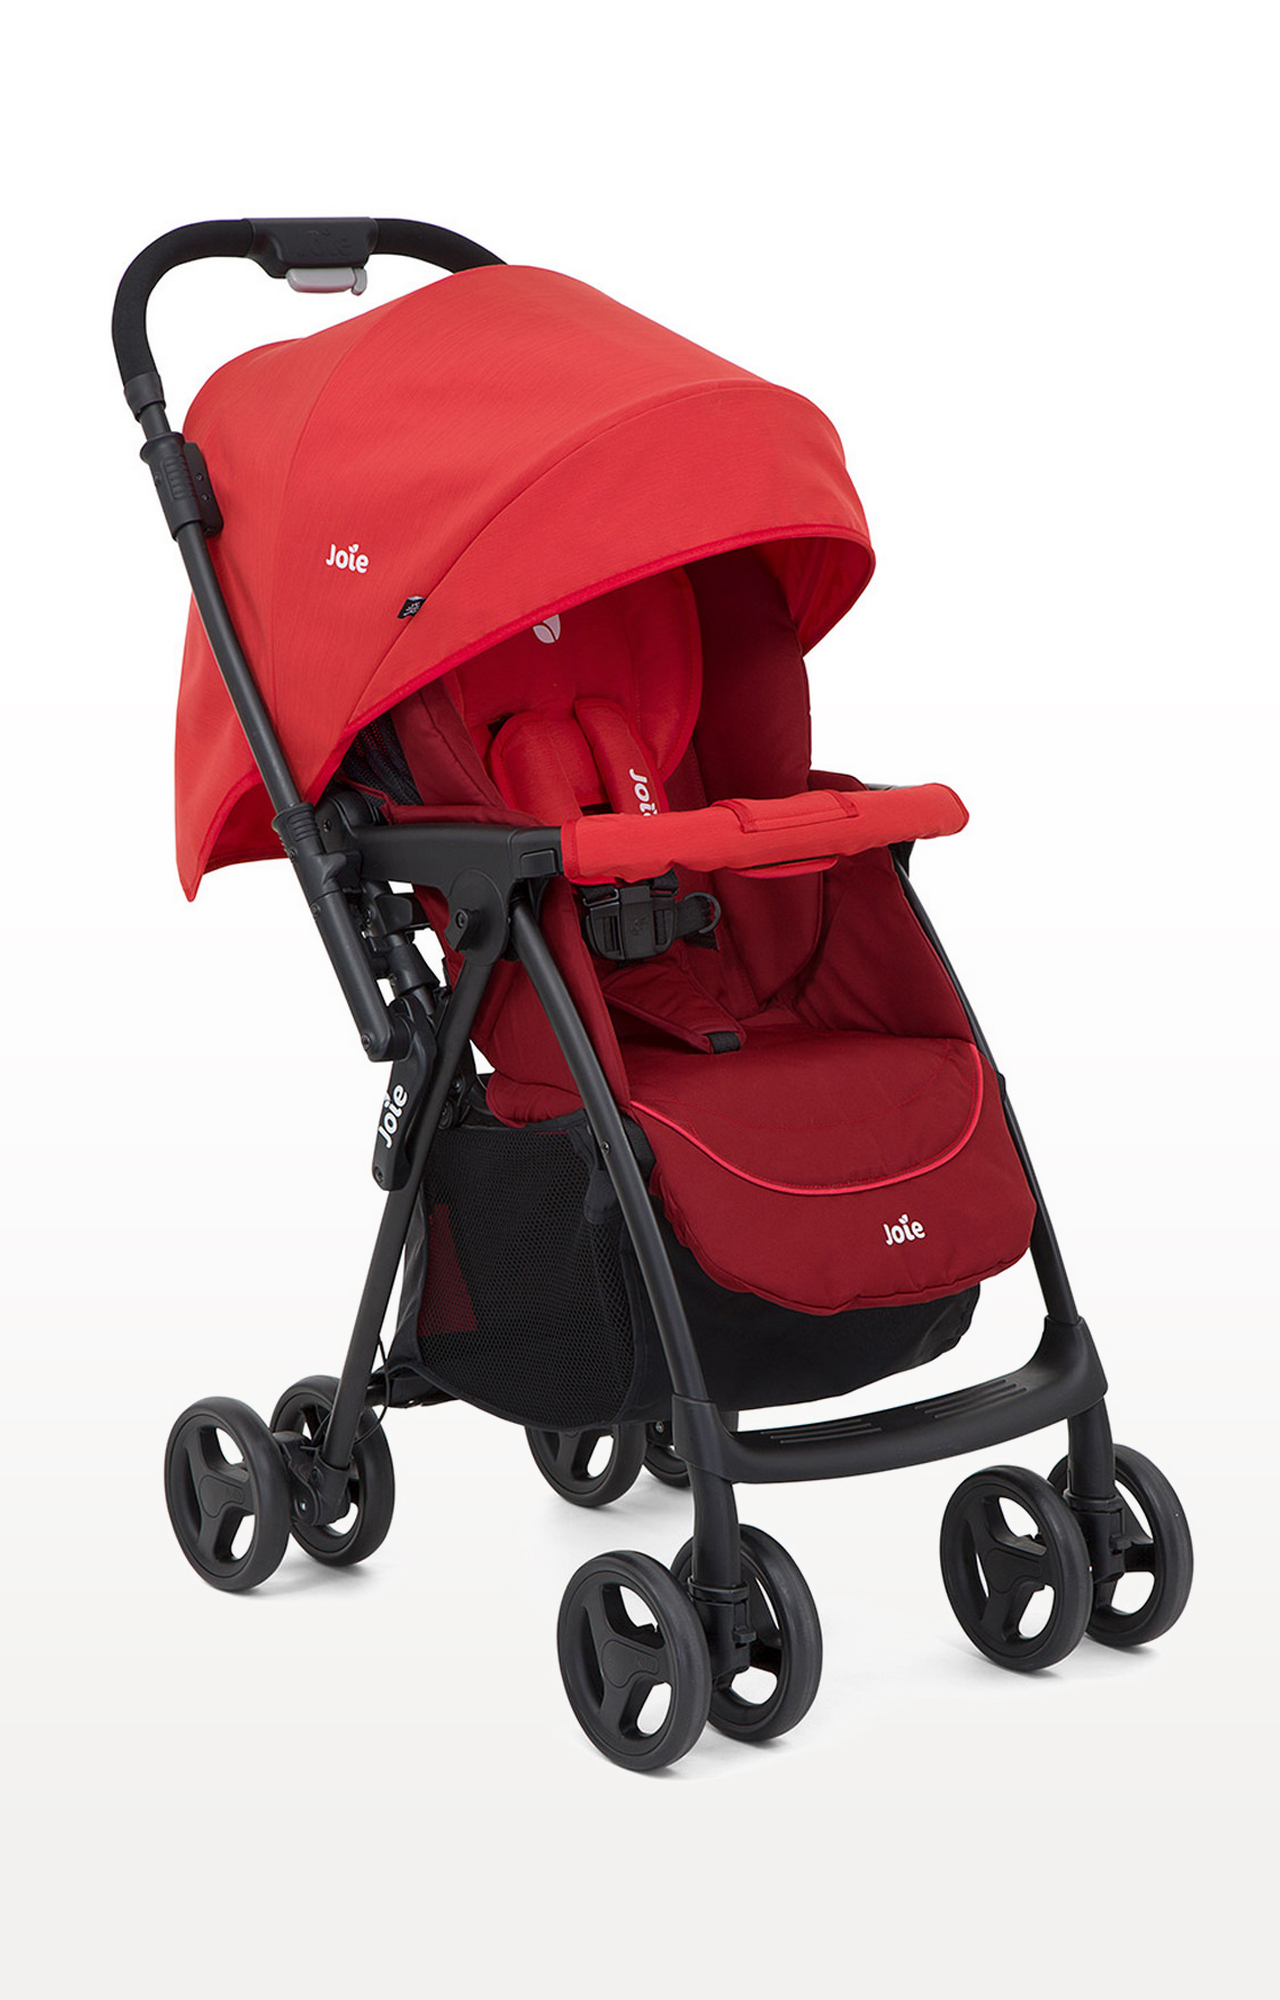 Mothercare | Joie Mirus W/ Rc Baby Stroller Red